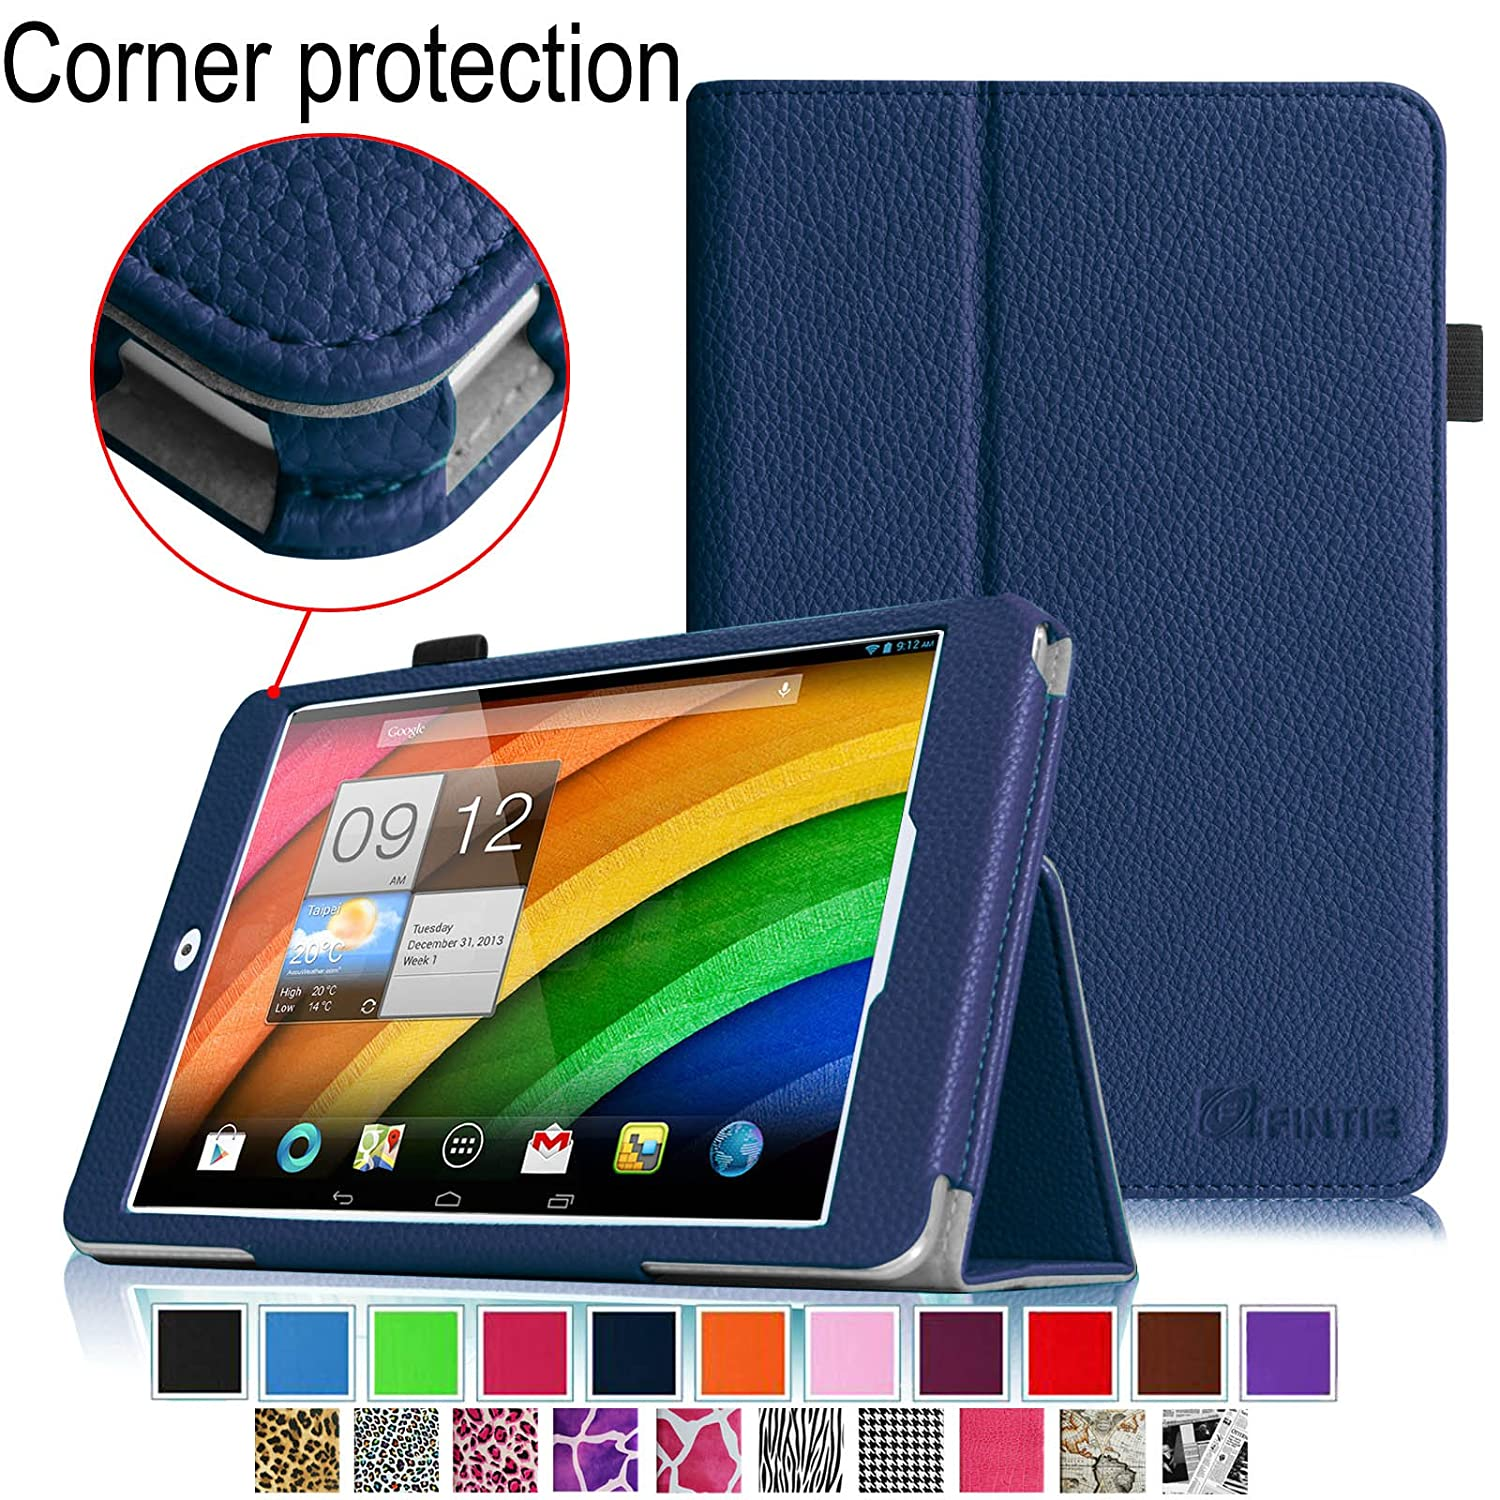 Фото Fintie Acer Iconia Tab 8 A1-840 FHD 8-Inch Android Tablet Folio Case - Premium Leather Cover Stand With Stylus Holder luxury ultra slim folio stand flip leather case smart sleeve cover for lg g pad 4 iv 8 0 p530 fhd lte 2017 lg p530 8 tablet pc